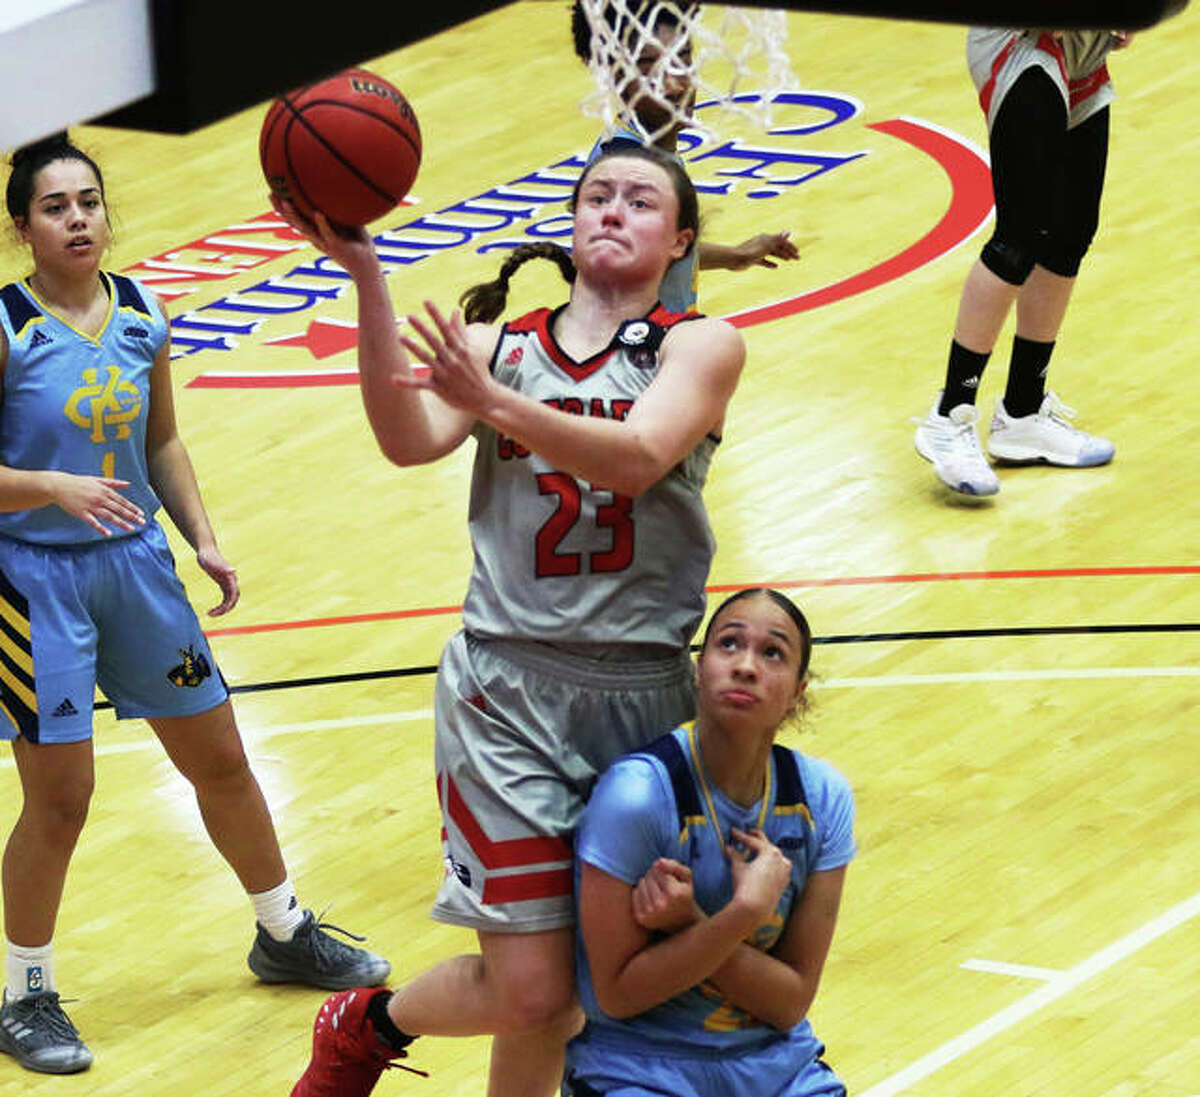 SIUE's Allie Troeckler (23) scores on her drive to the basket while getting fouled by Kansas City's Paige Bradford during a game last season at First Community Arena in Edwardsville. Troeckler will return for a fifth season with the Cougars this winter.